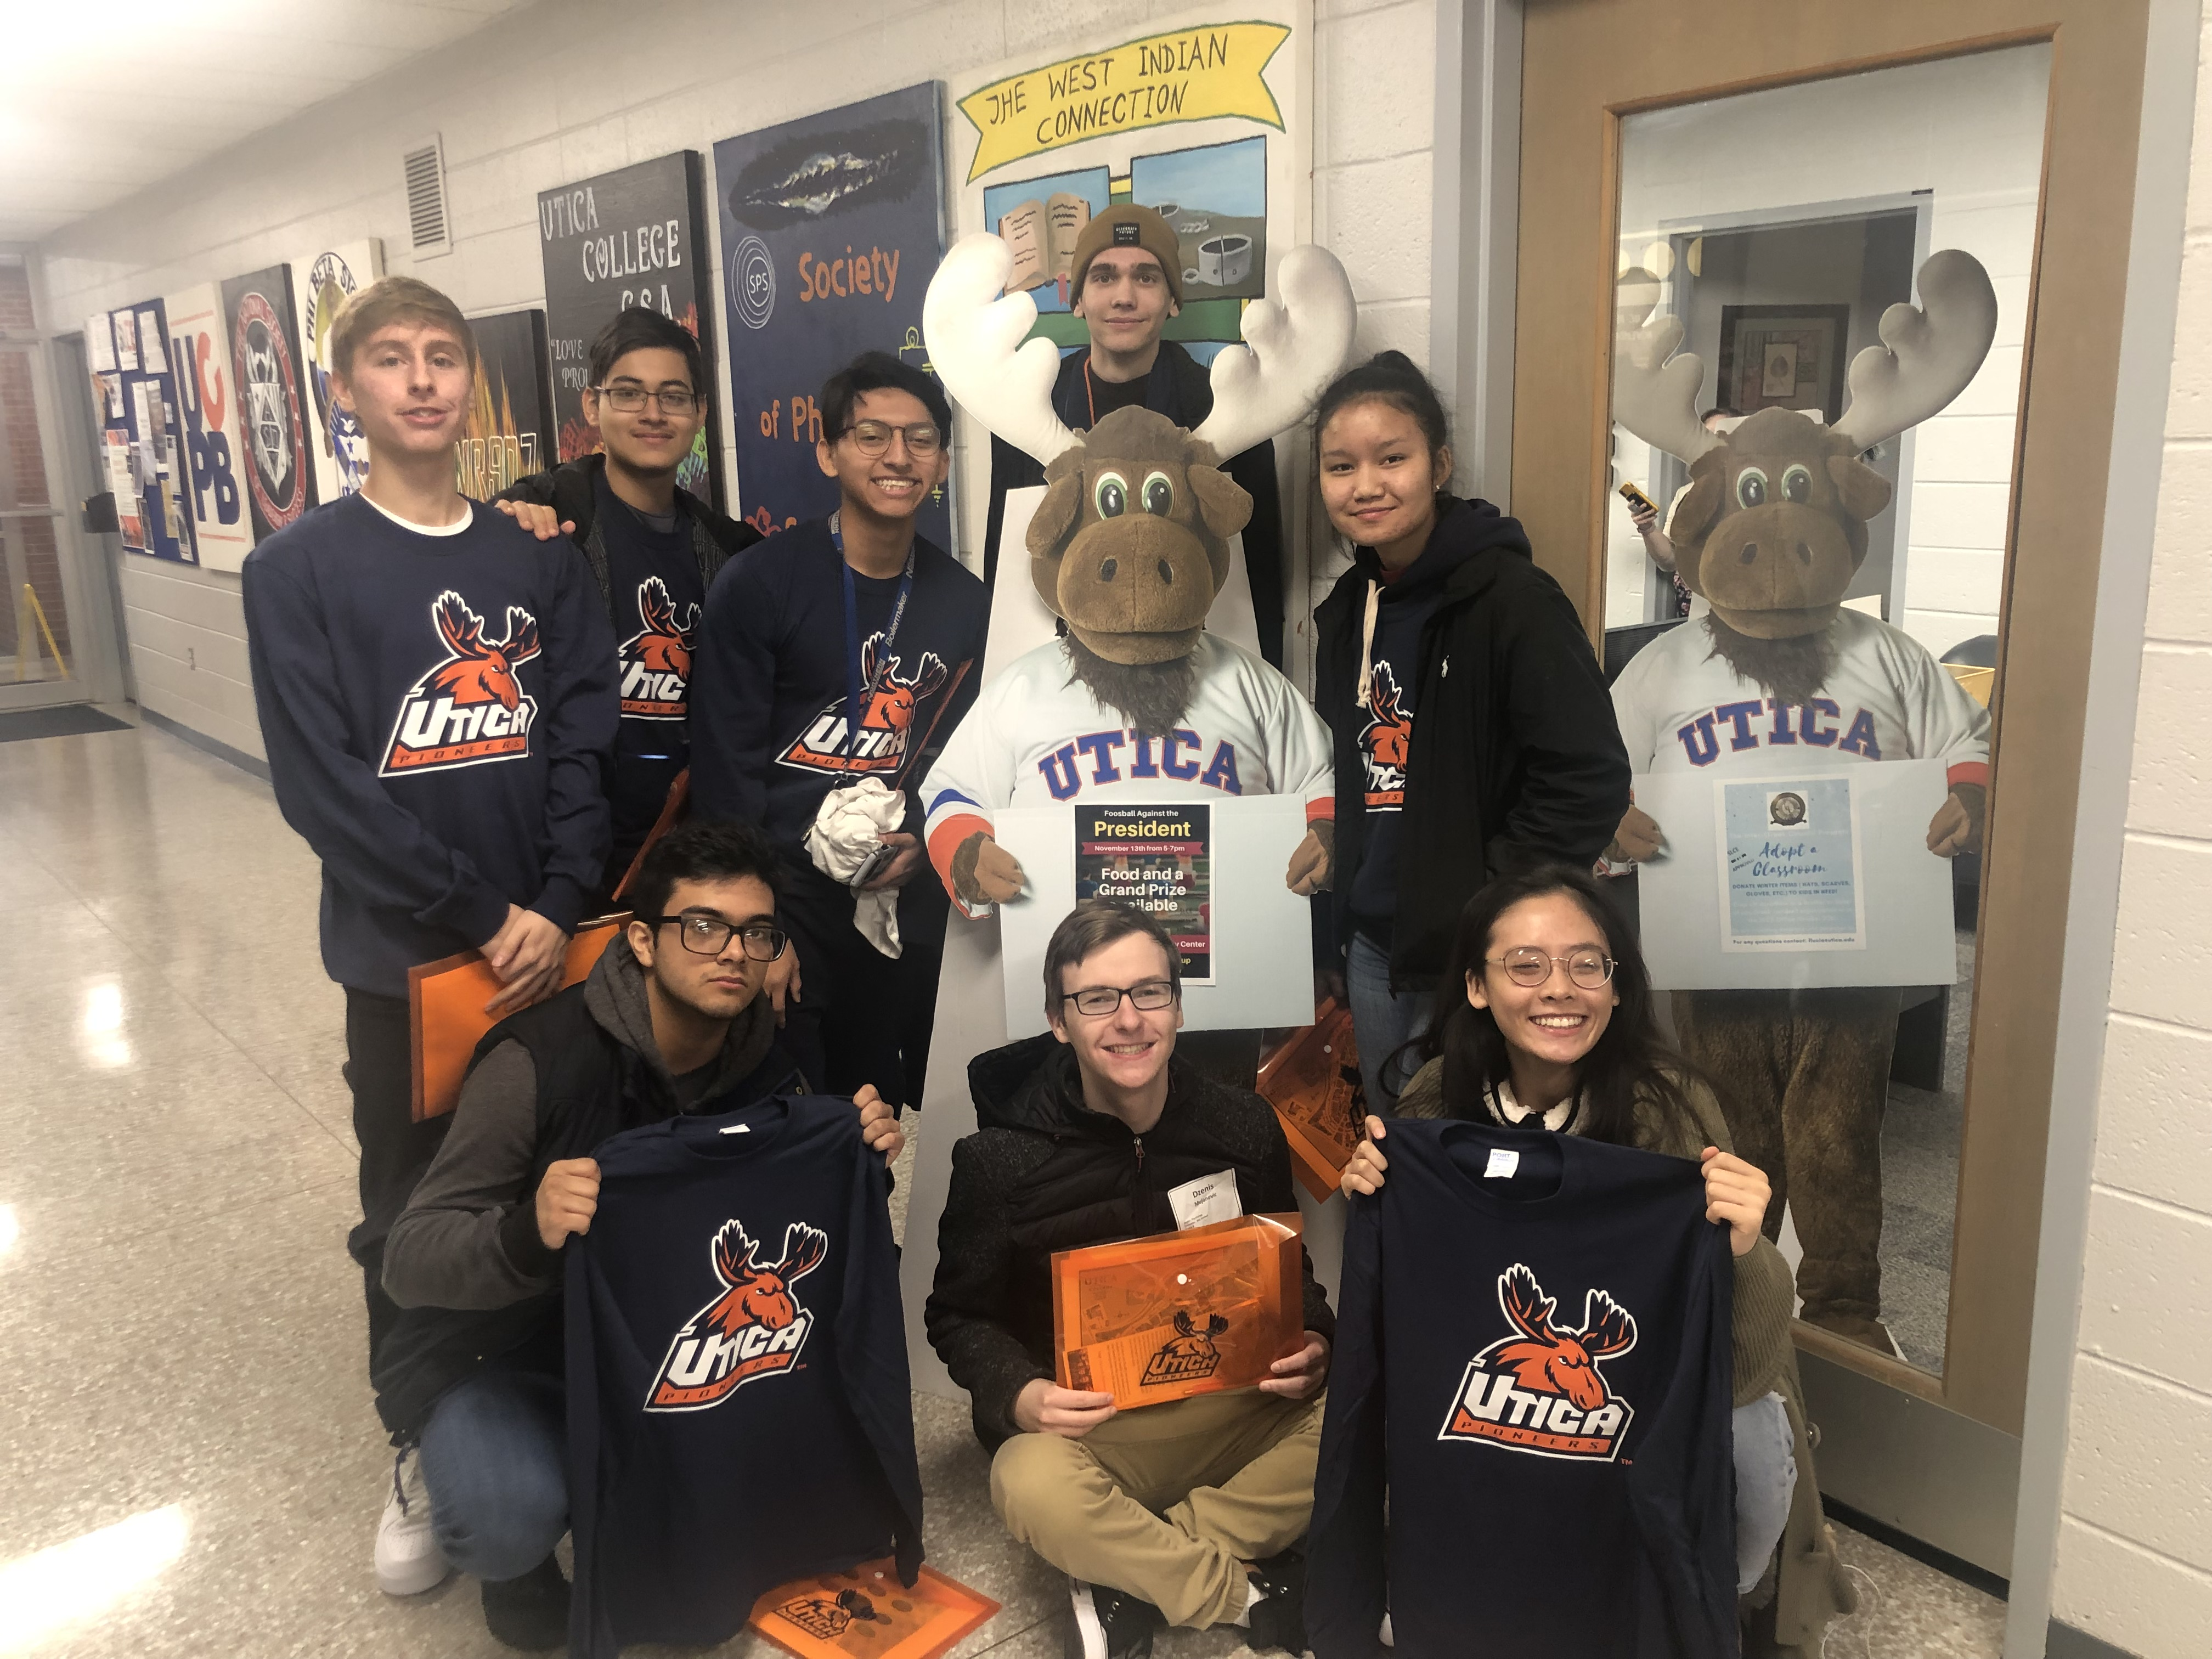 YSLPP seniors attend the Utica College Open House